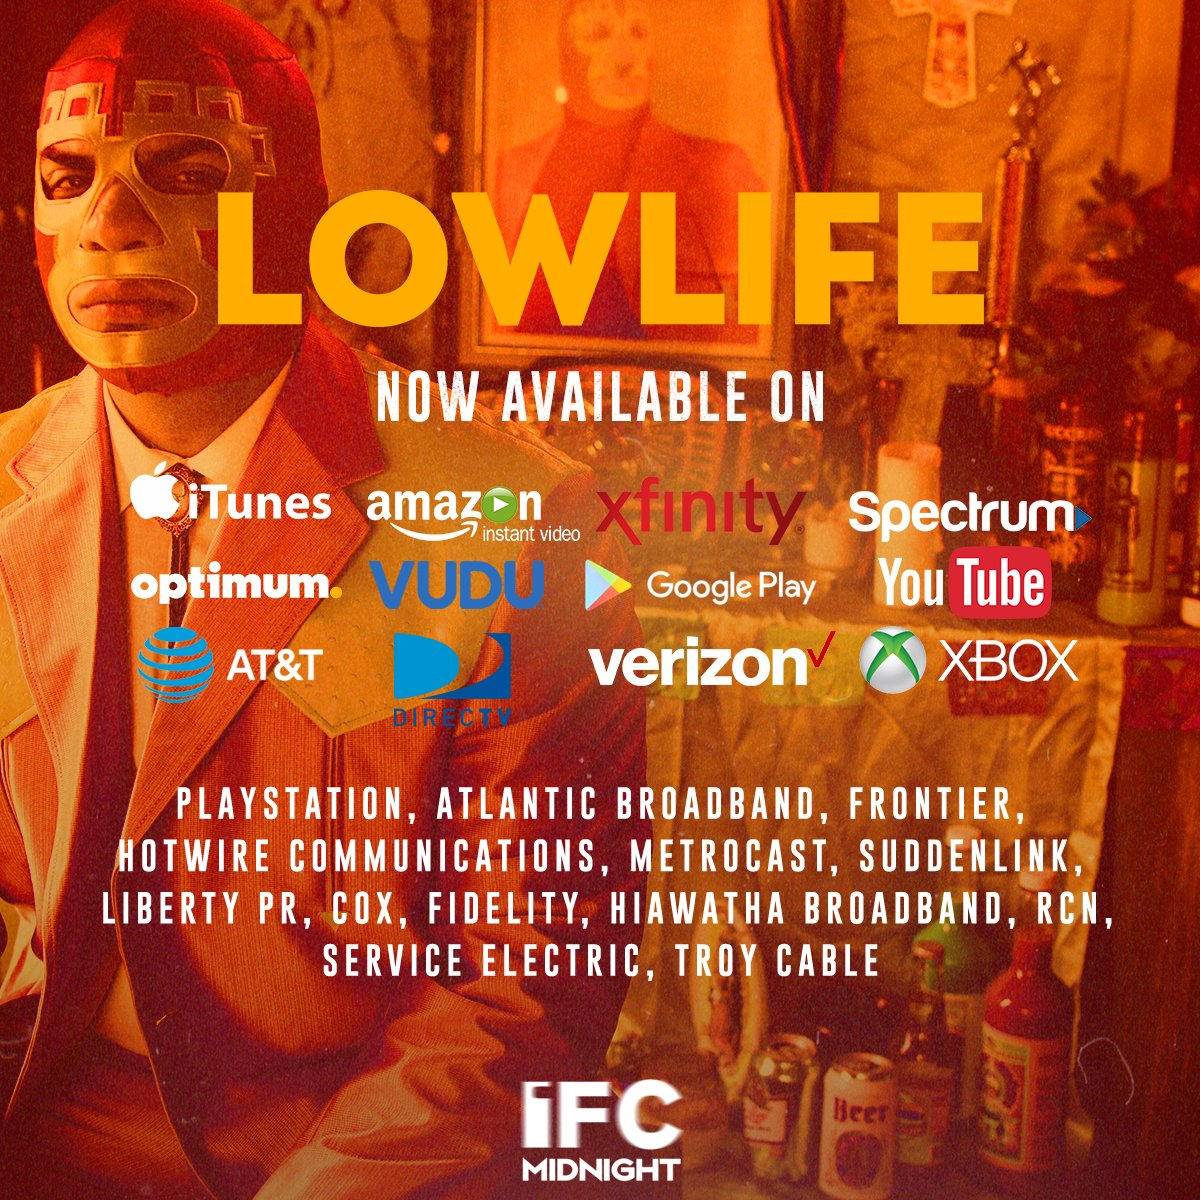 @FleekestGeekest Available now on these VOD outlets!